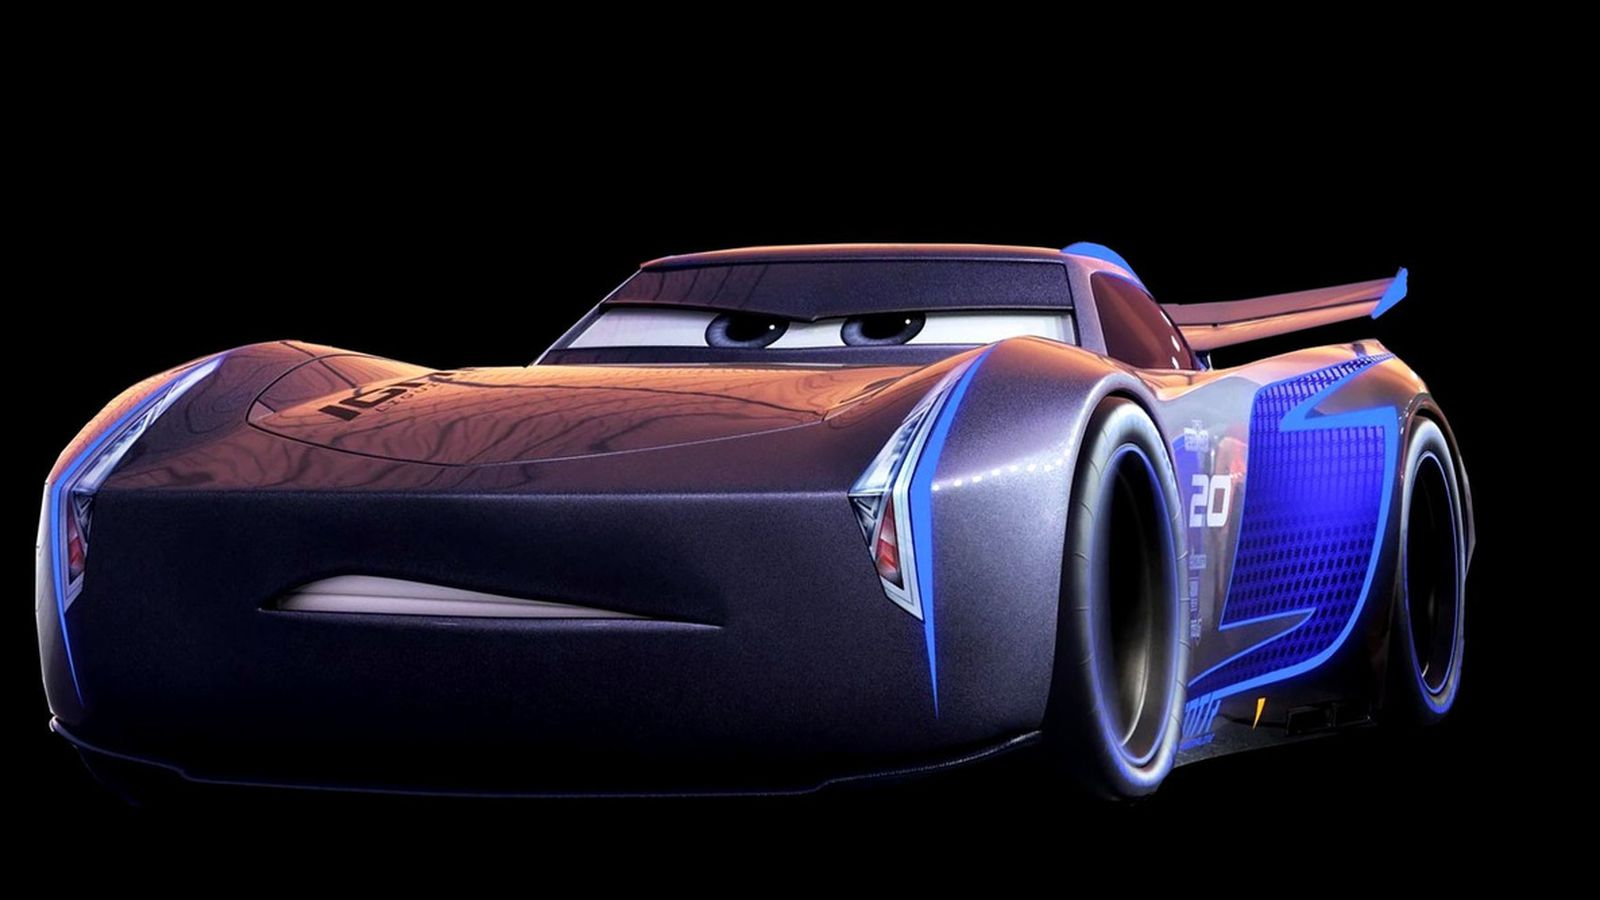 Cars 3 Trailer Hits On The Issue Of Technology And